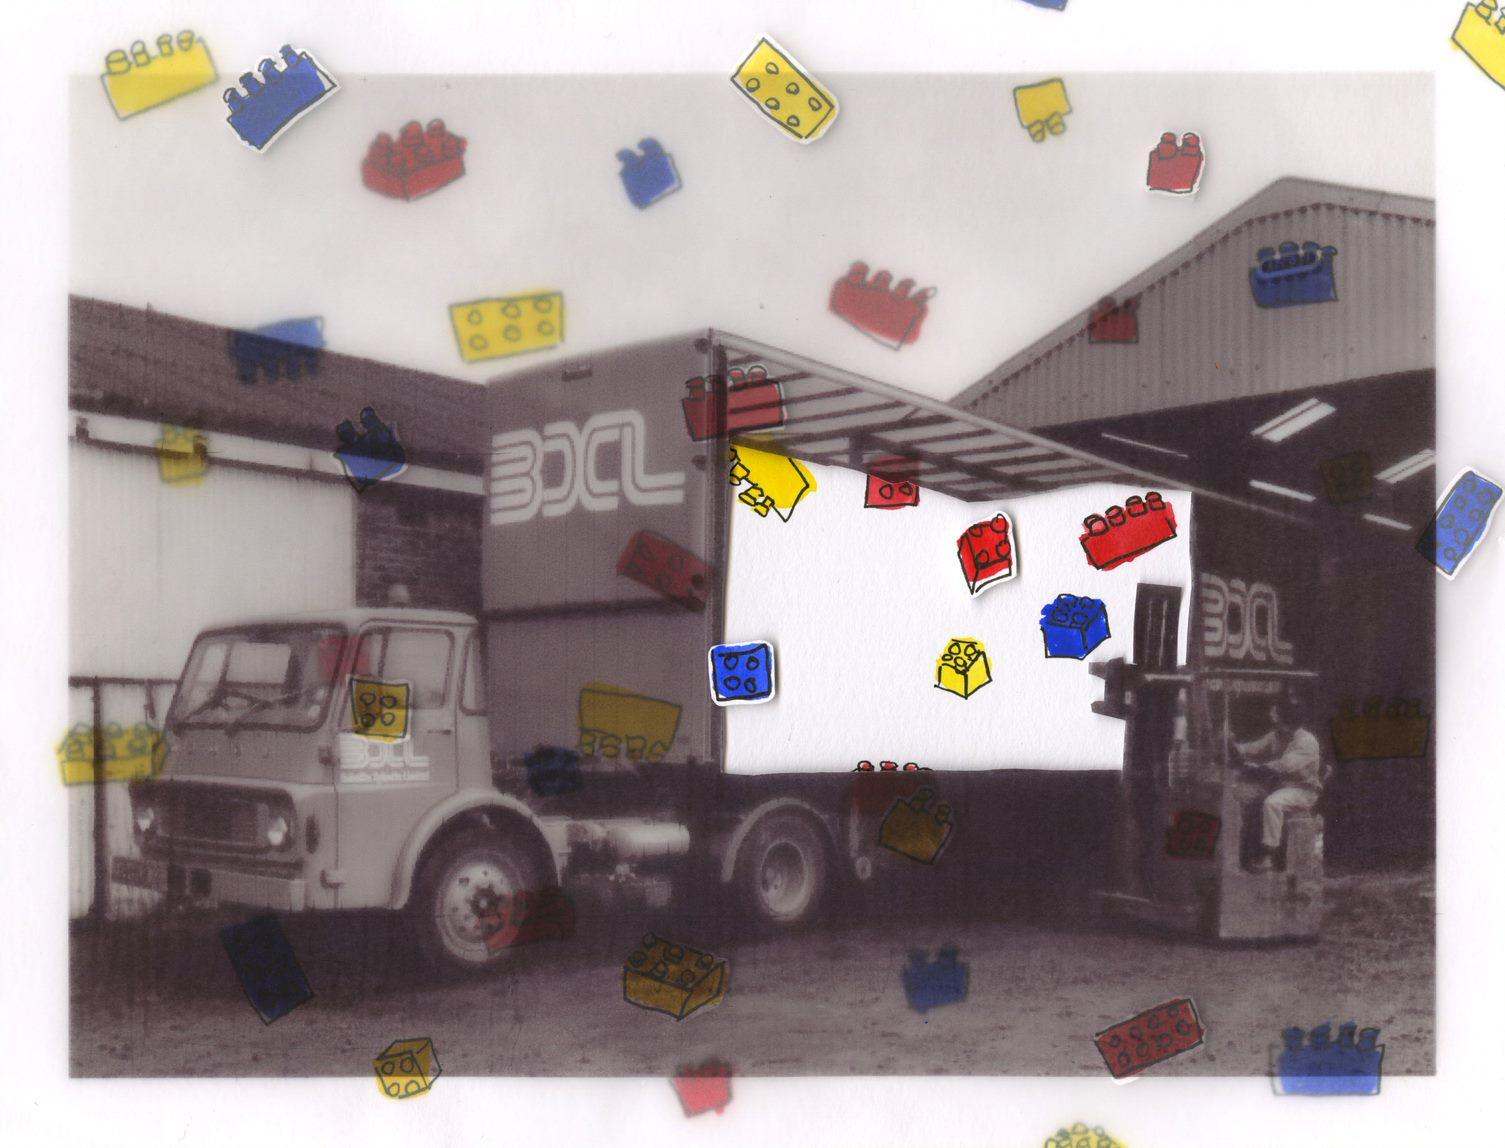 Plenmeller factory: bulk wrapping on lorry – BXL (photograph) on tracing paper. Cut out with watercolour painting behind with foam pads.